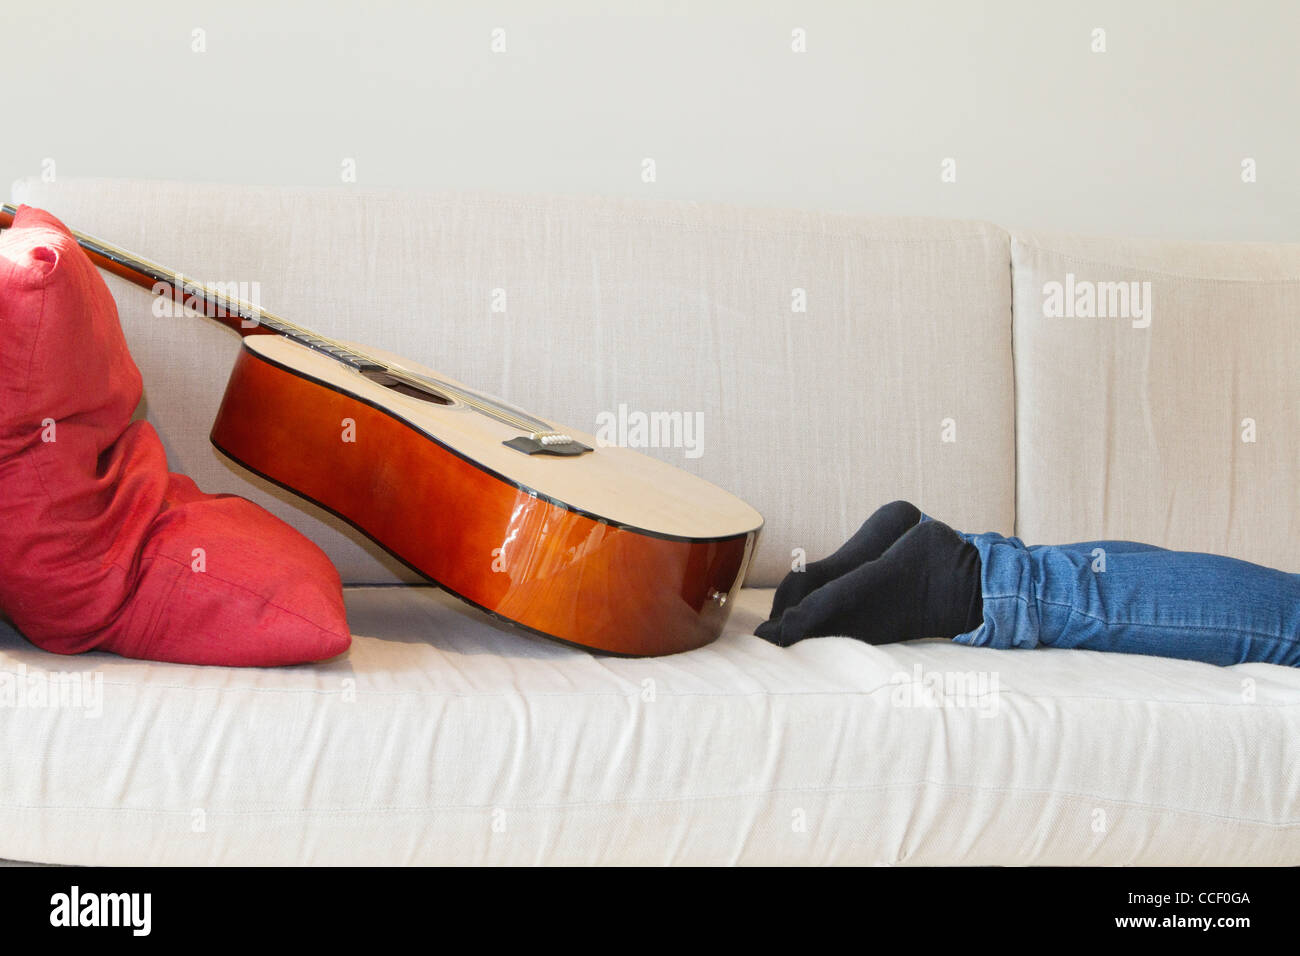 Low section of man's leg with guitar kept on sofa - Stock Image